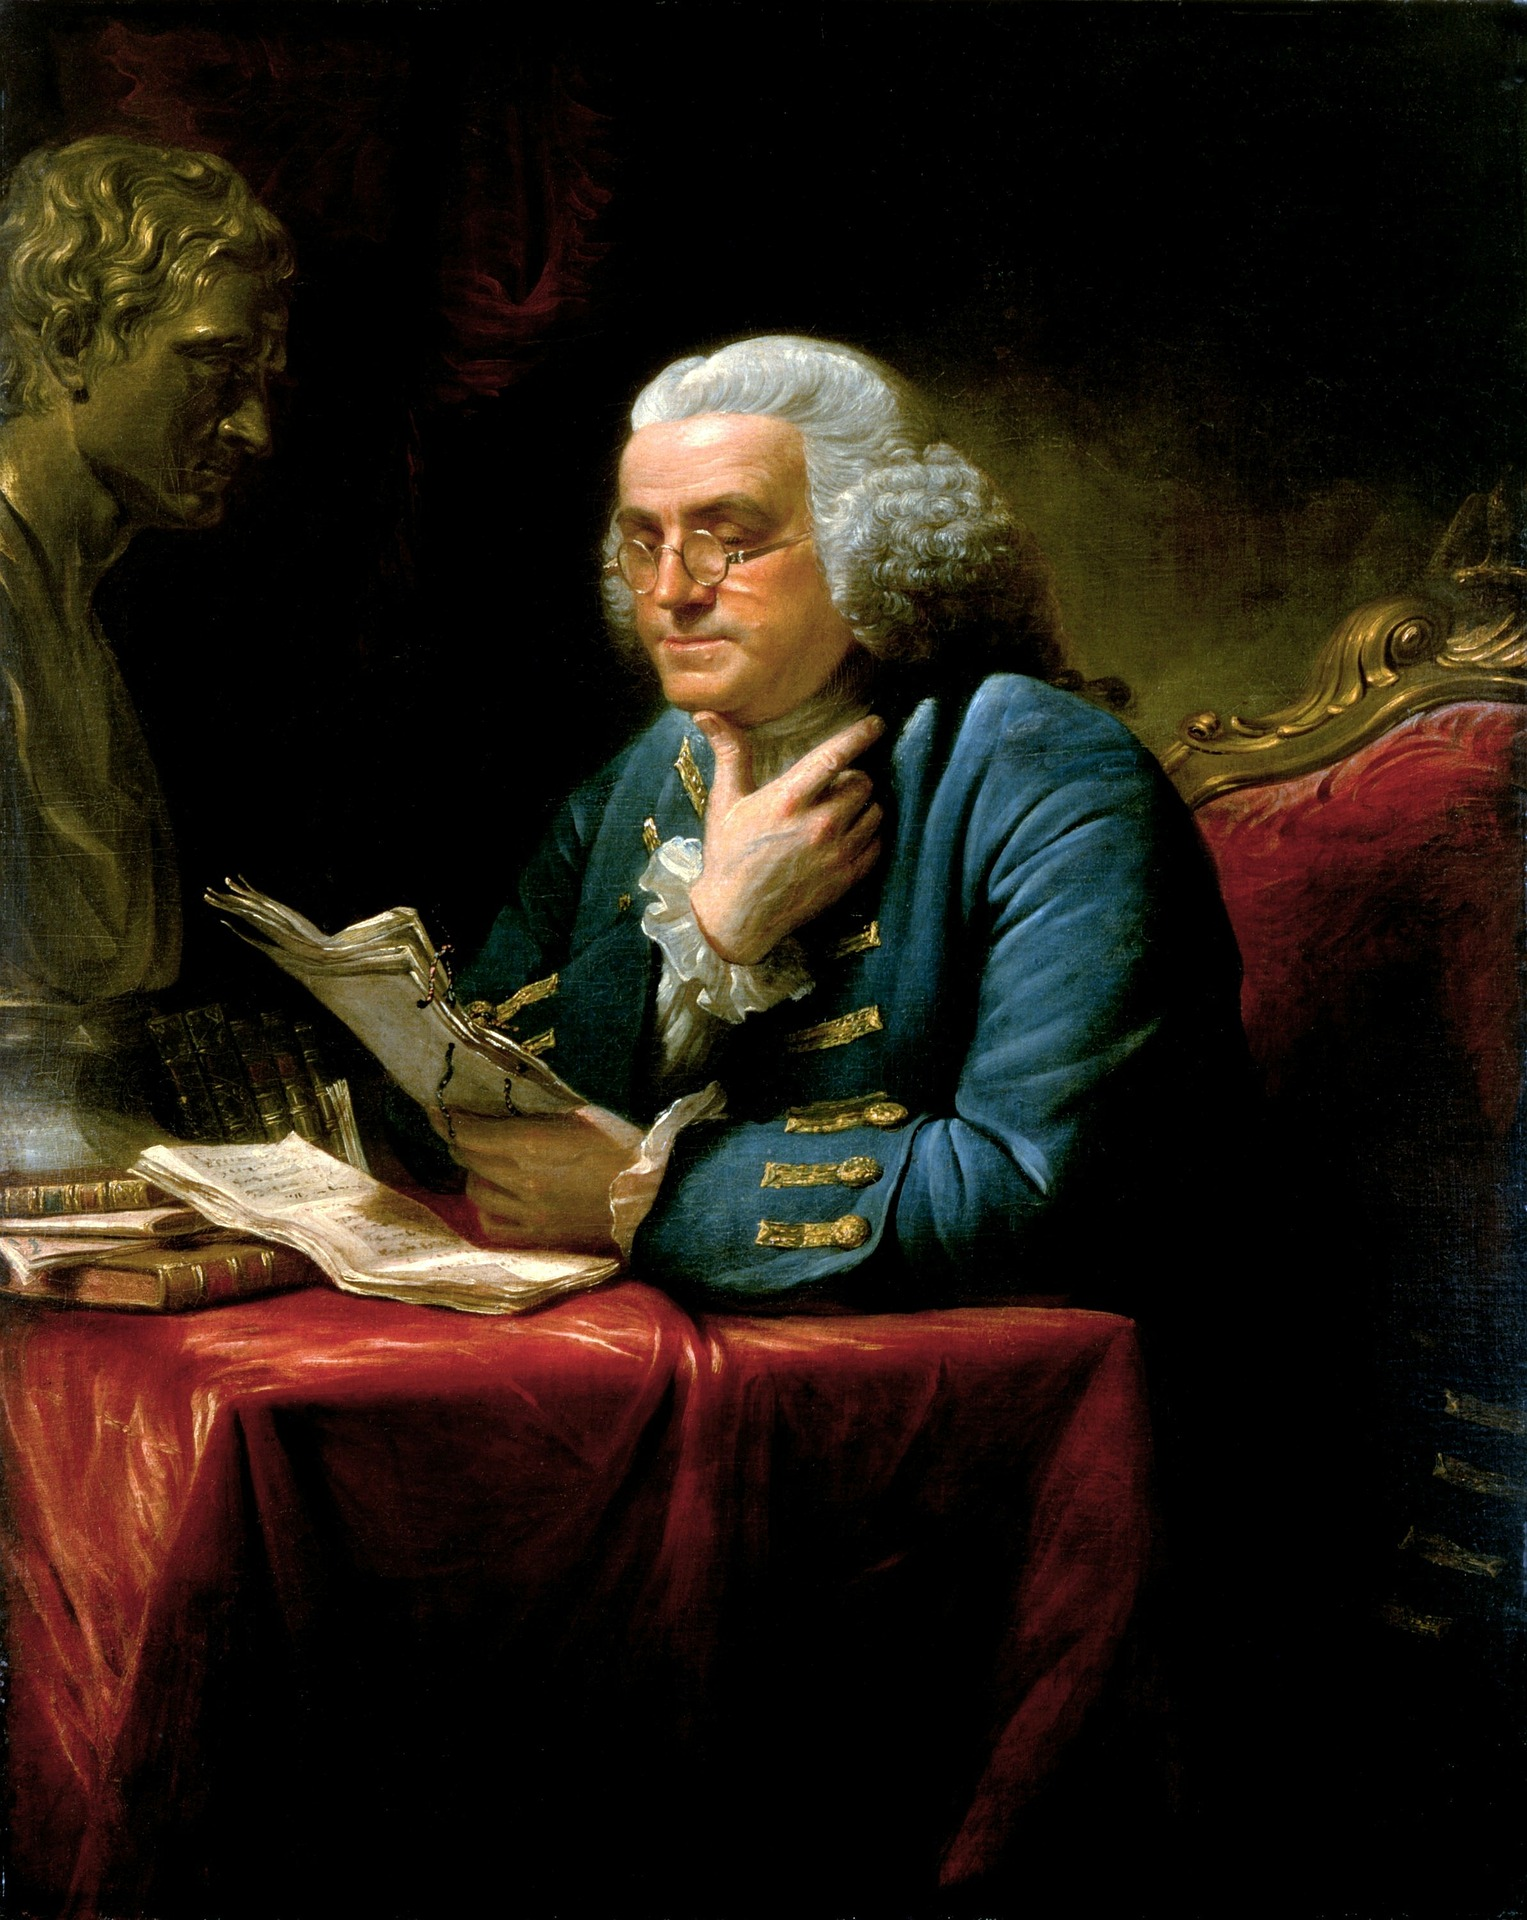 Microtasks: An Unlikely Legacy of Benjamin Franklin